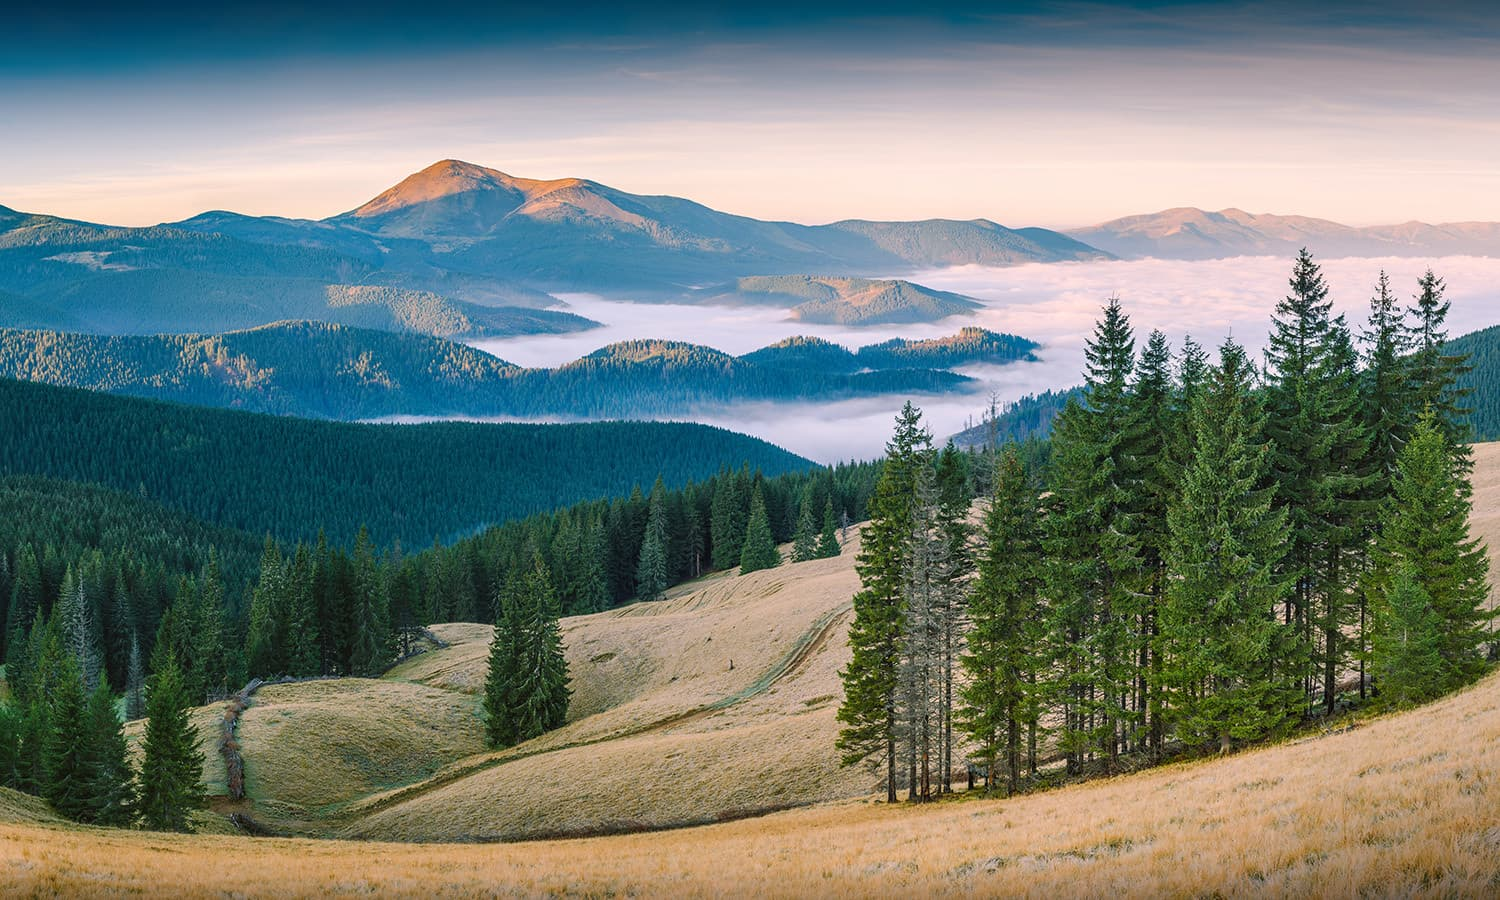 Sixth place: Carpathian Biosphere Reserve, Zakarpattia Oblast, Ukraine. — Photo by Vian and retouched by Iifar